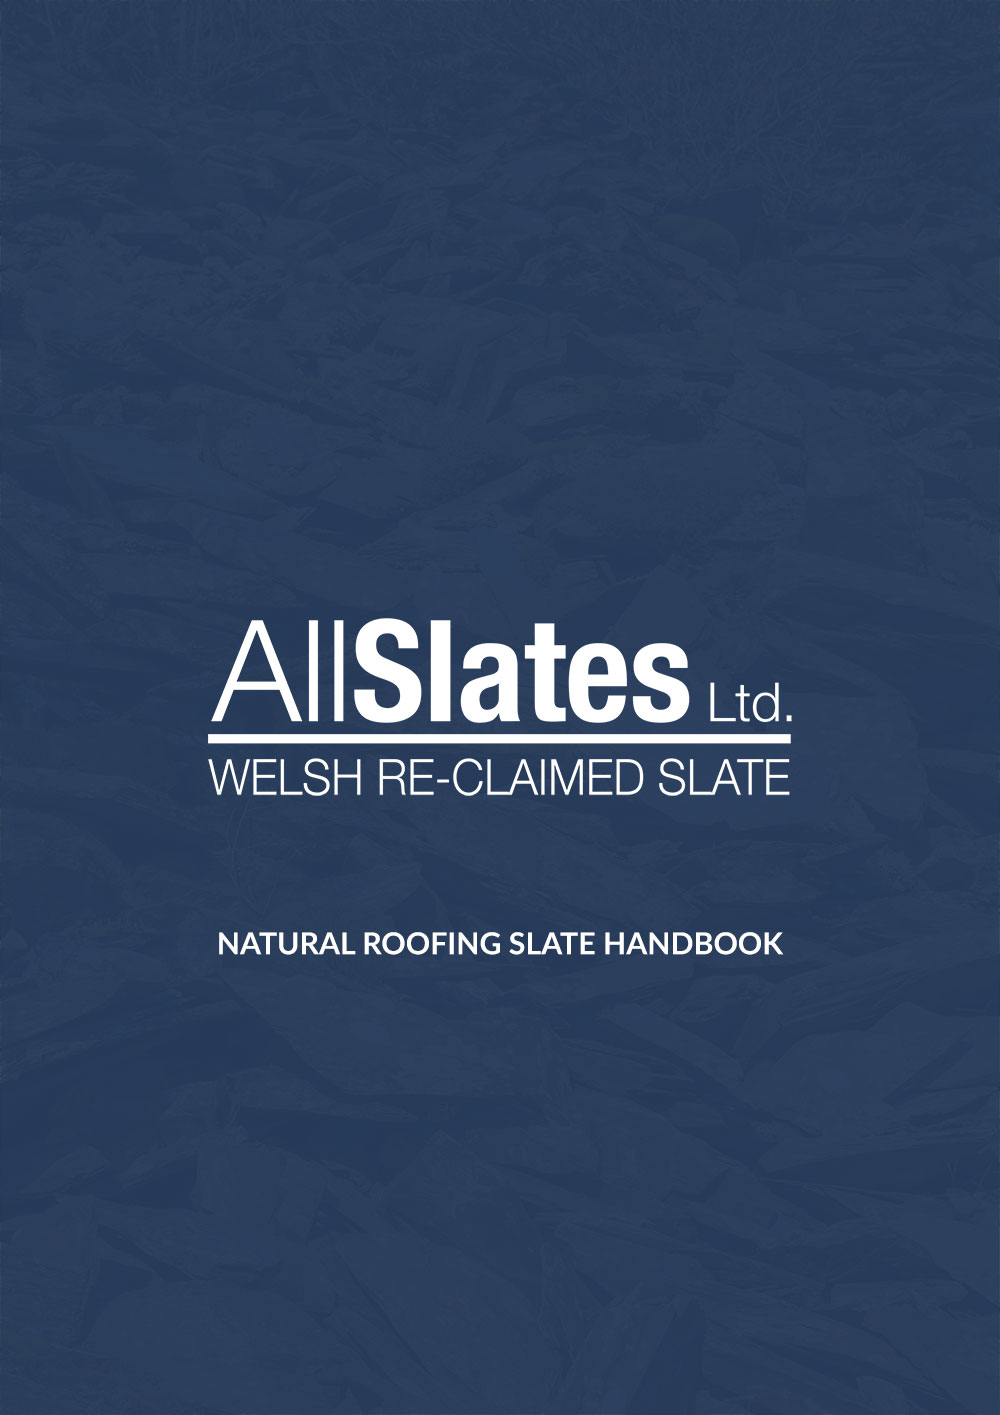 All Slates: Natural Roofing Slate Handbook